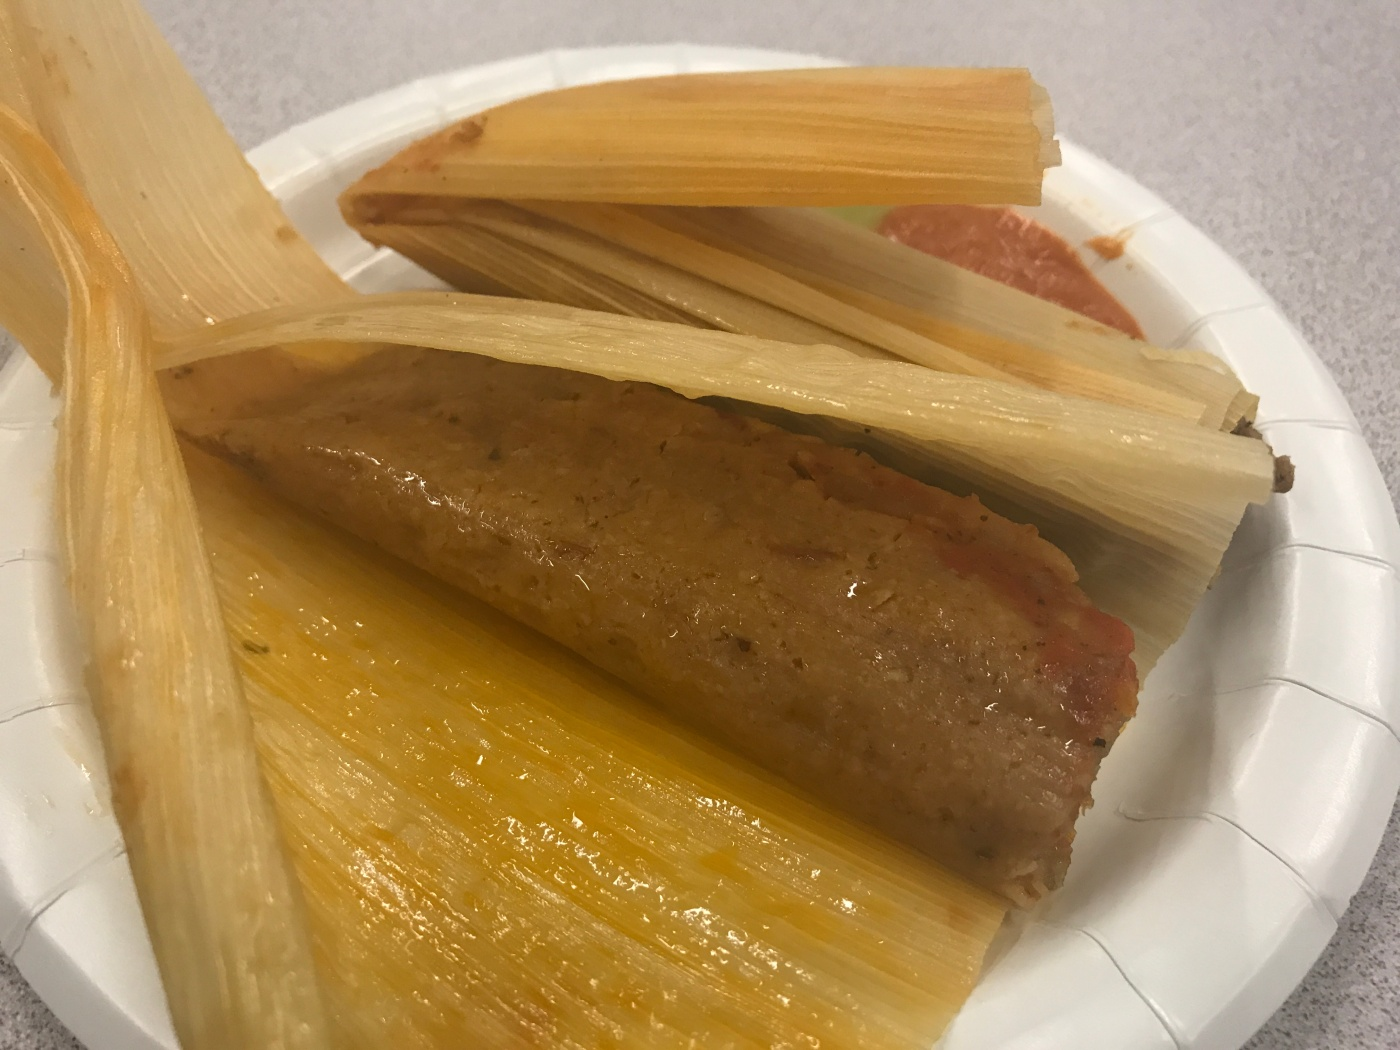 A Delicious Duo of Carnitas Tamales Courtesy of Alicia's Tamales Los Mayas and La Cocina During a Free Saturday Seminar at the University of the Pacific in San Francisco, California